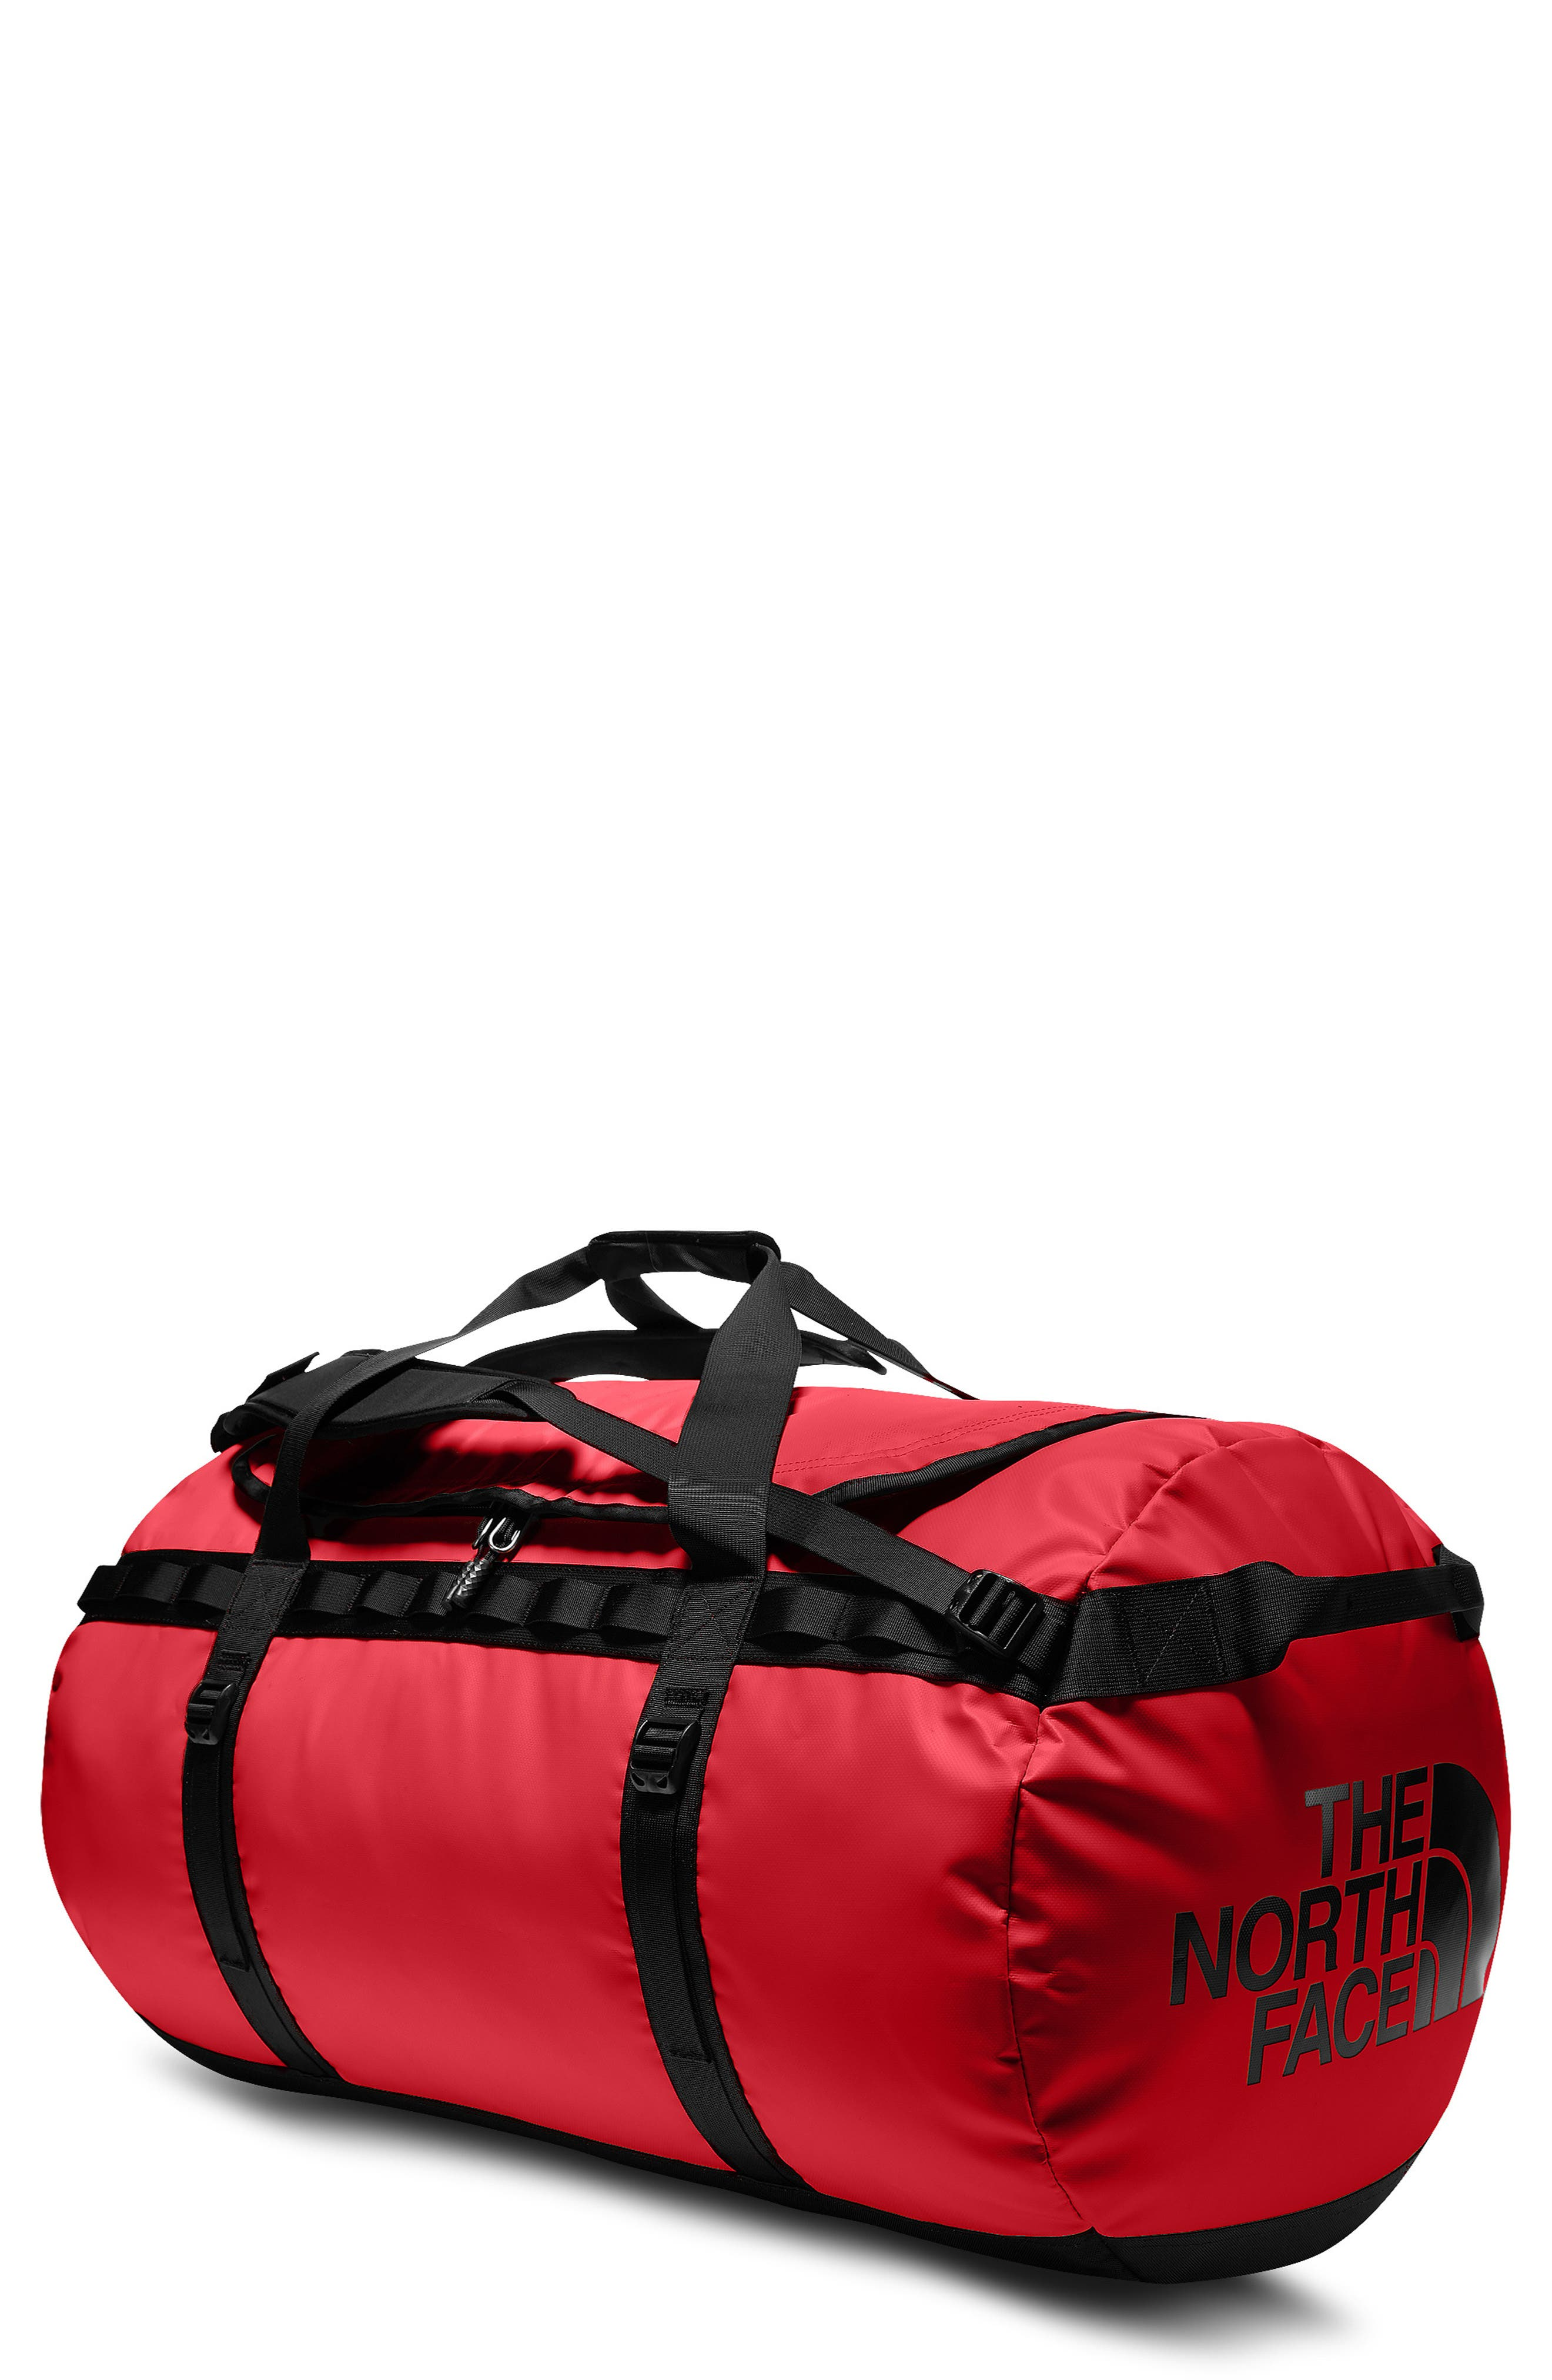 THE NORTH FACE Base Camp XL Duffle Bag, Main, color, RED/ BLACK